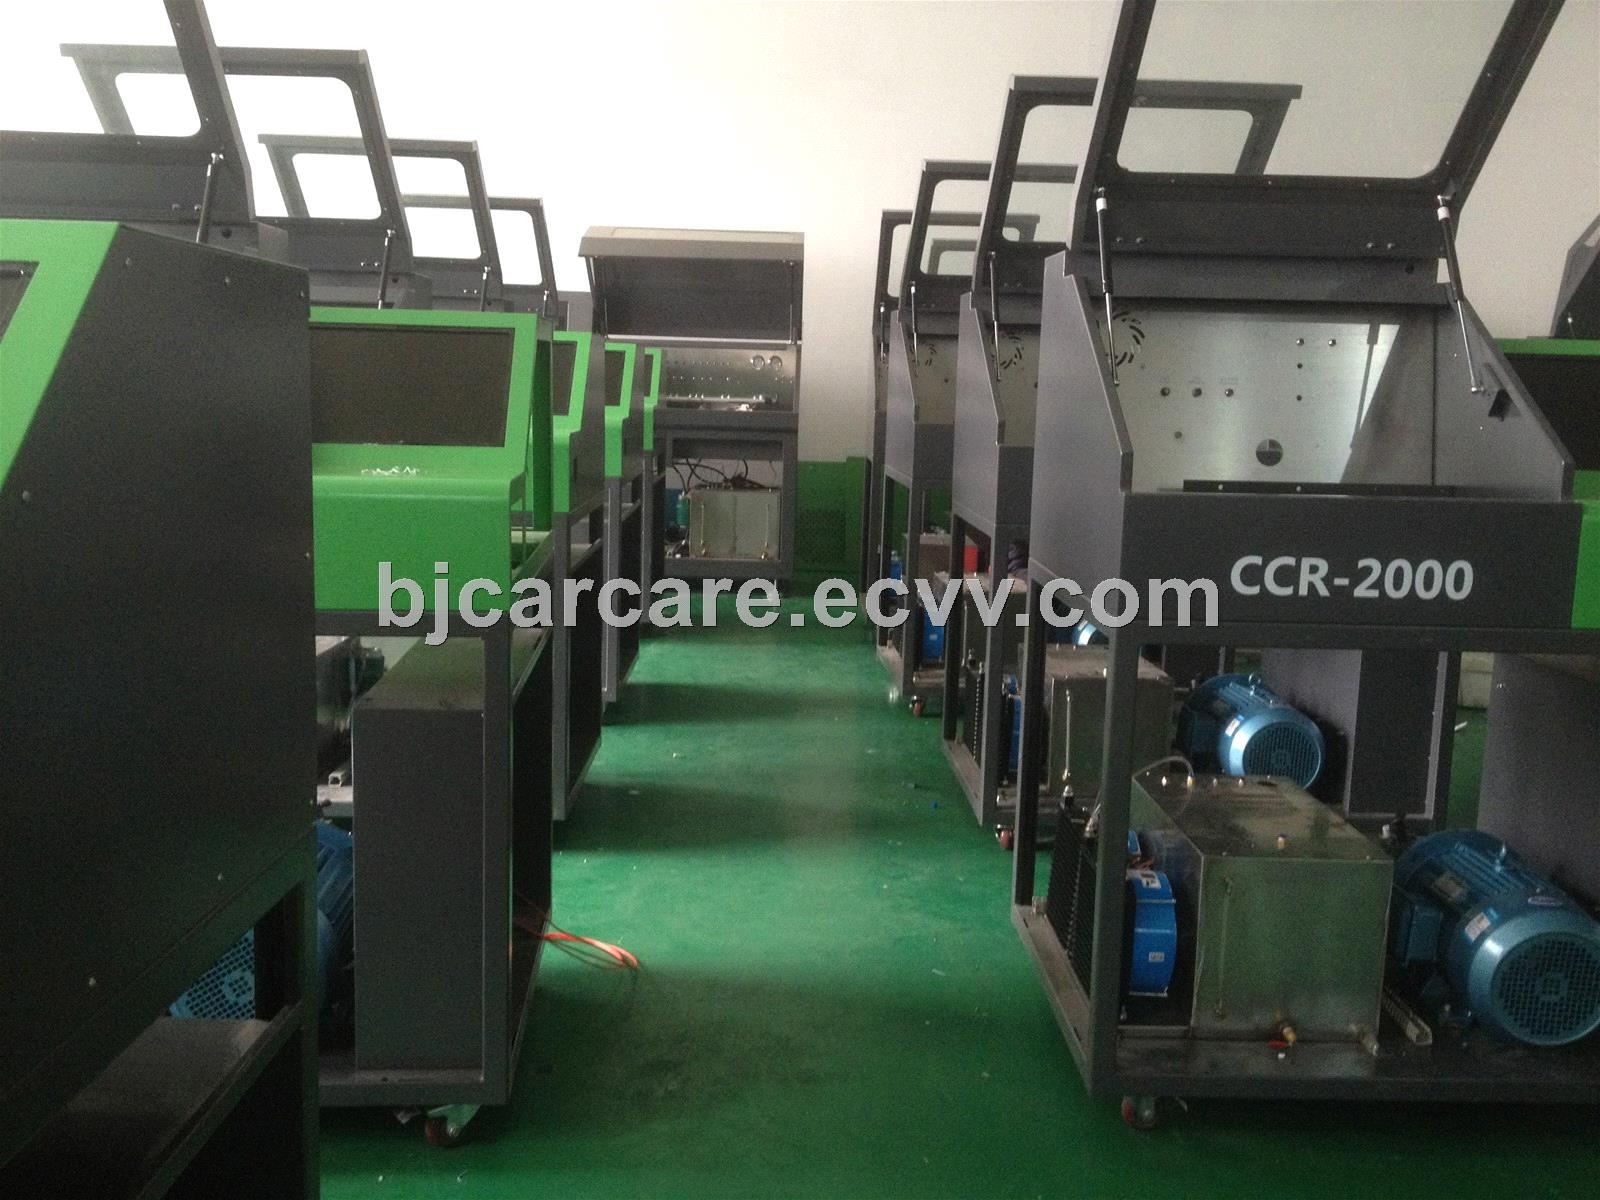 Beijing Carcare Technology Co., Ltd.